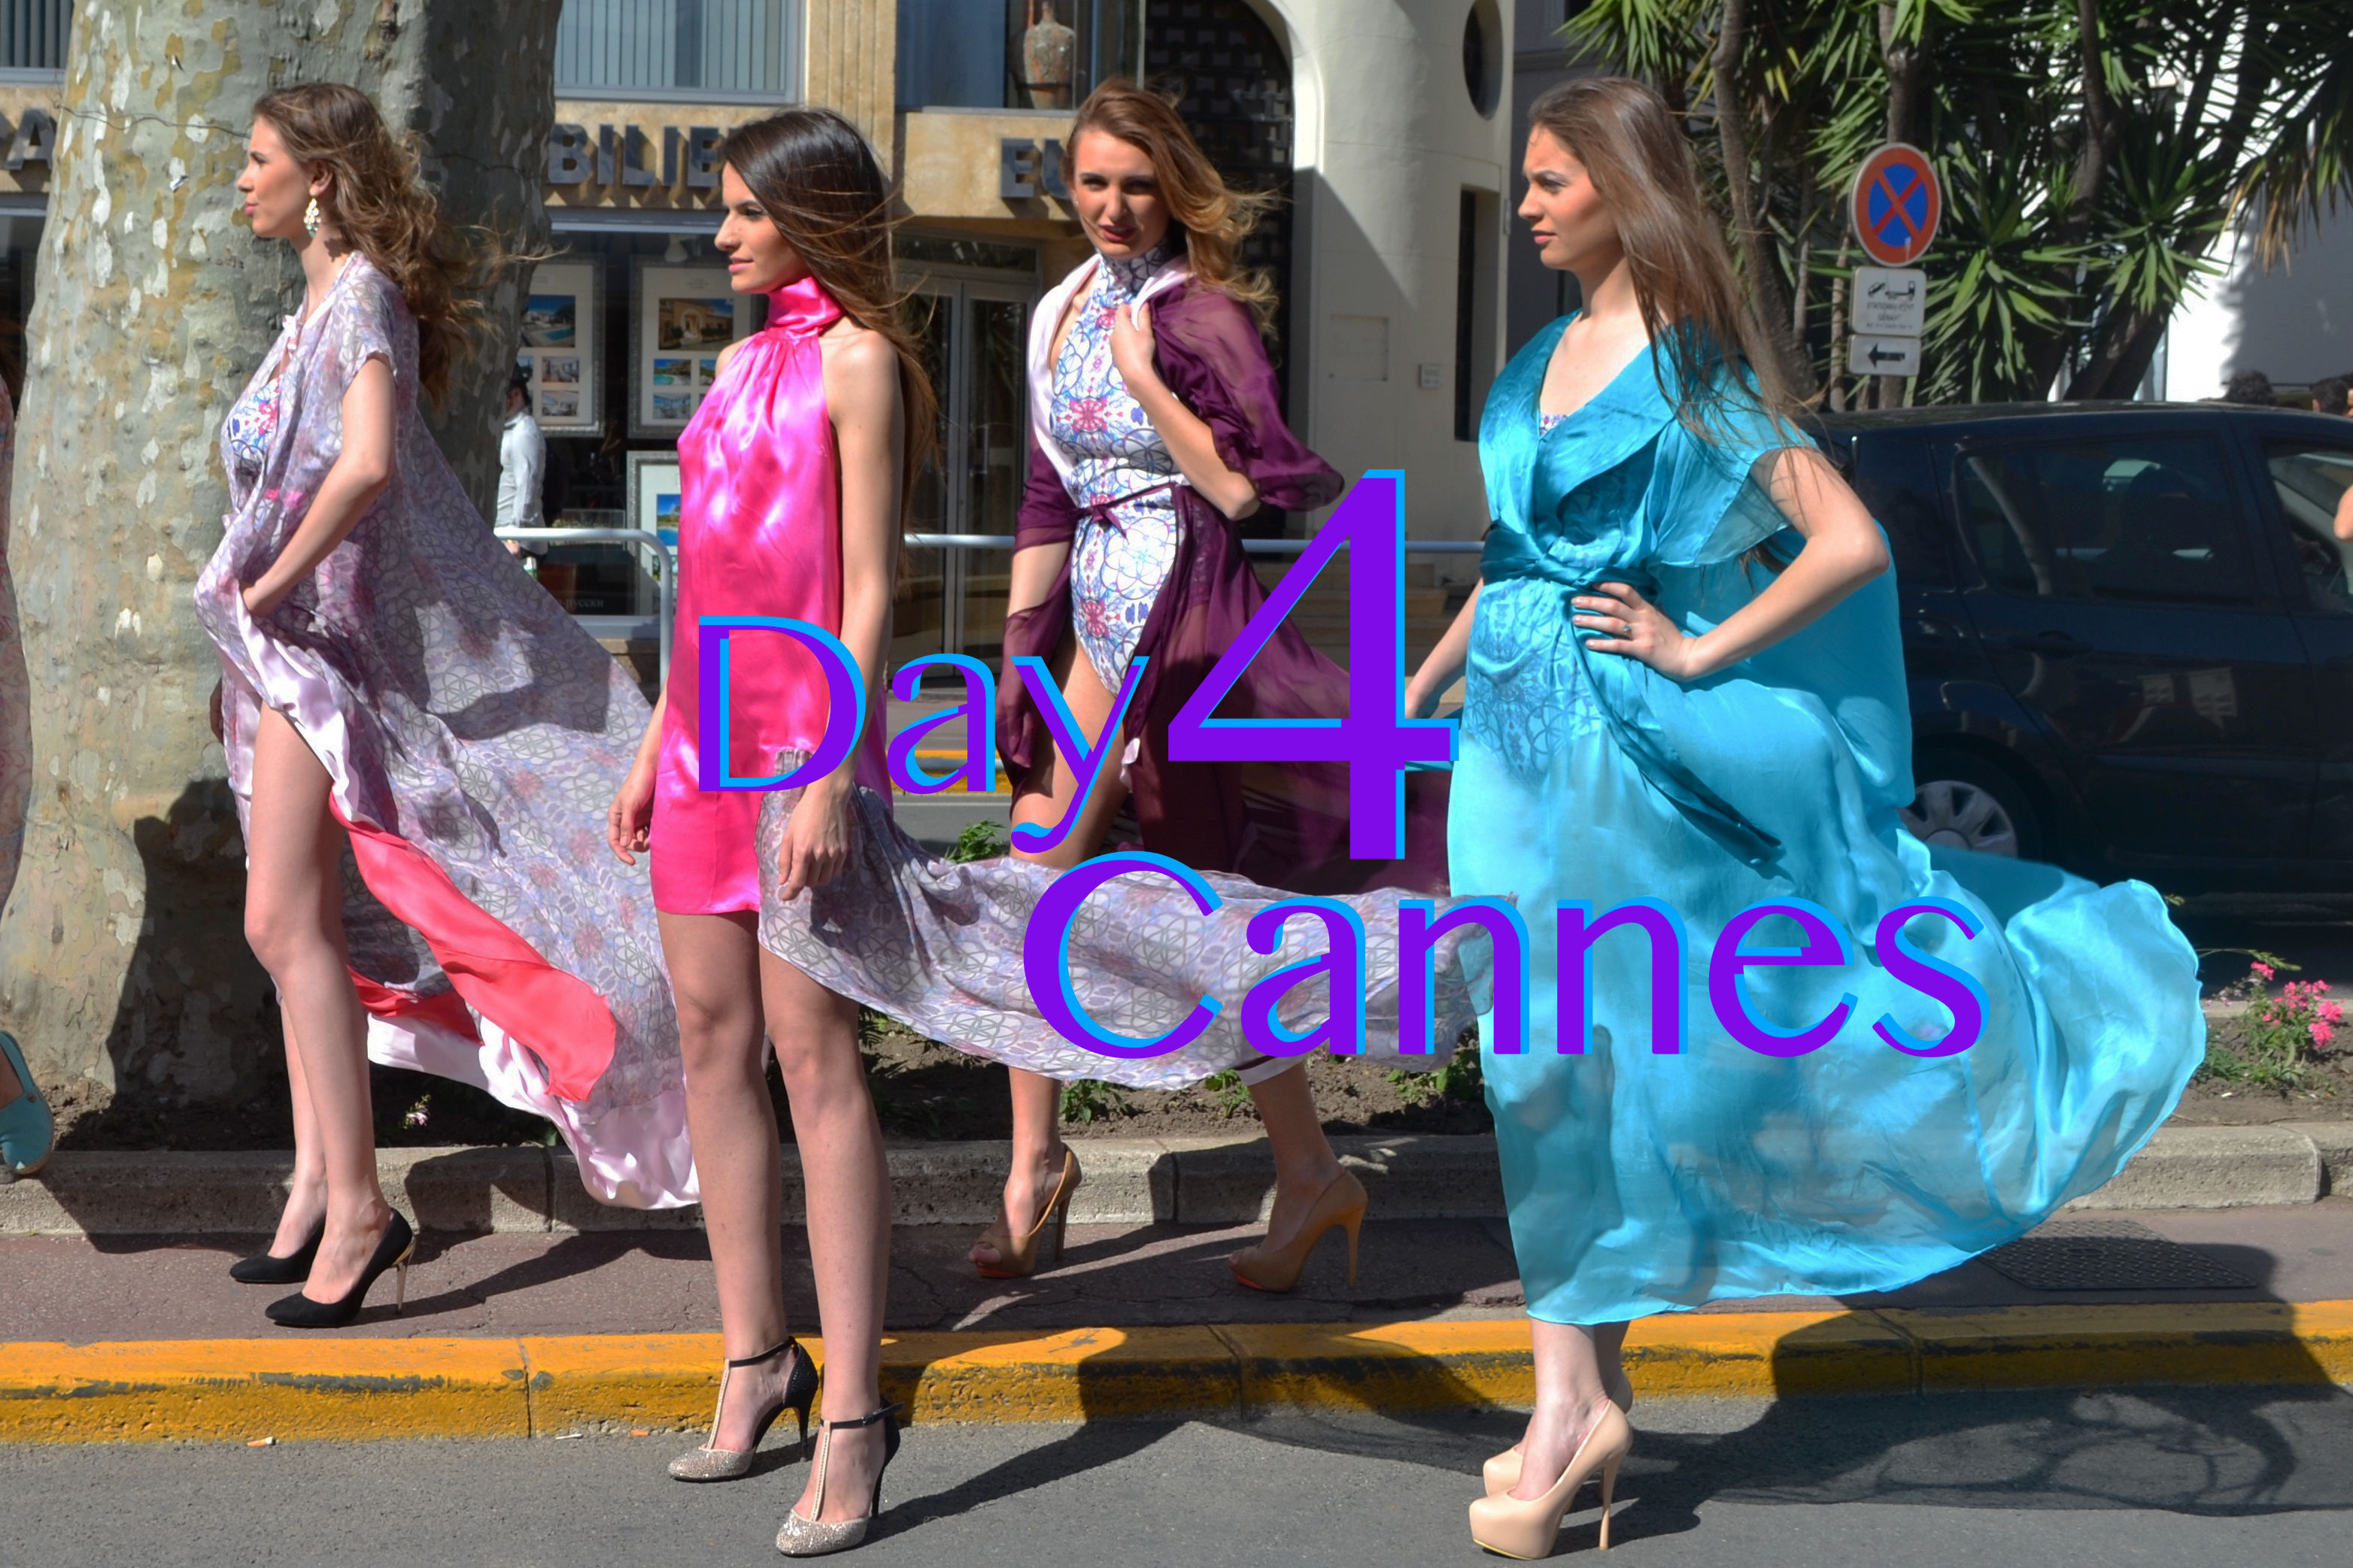 cannesday4